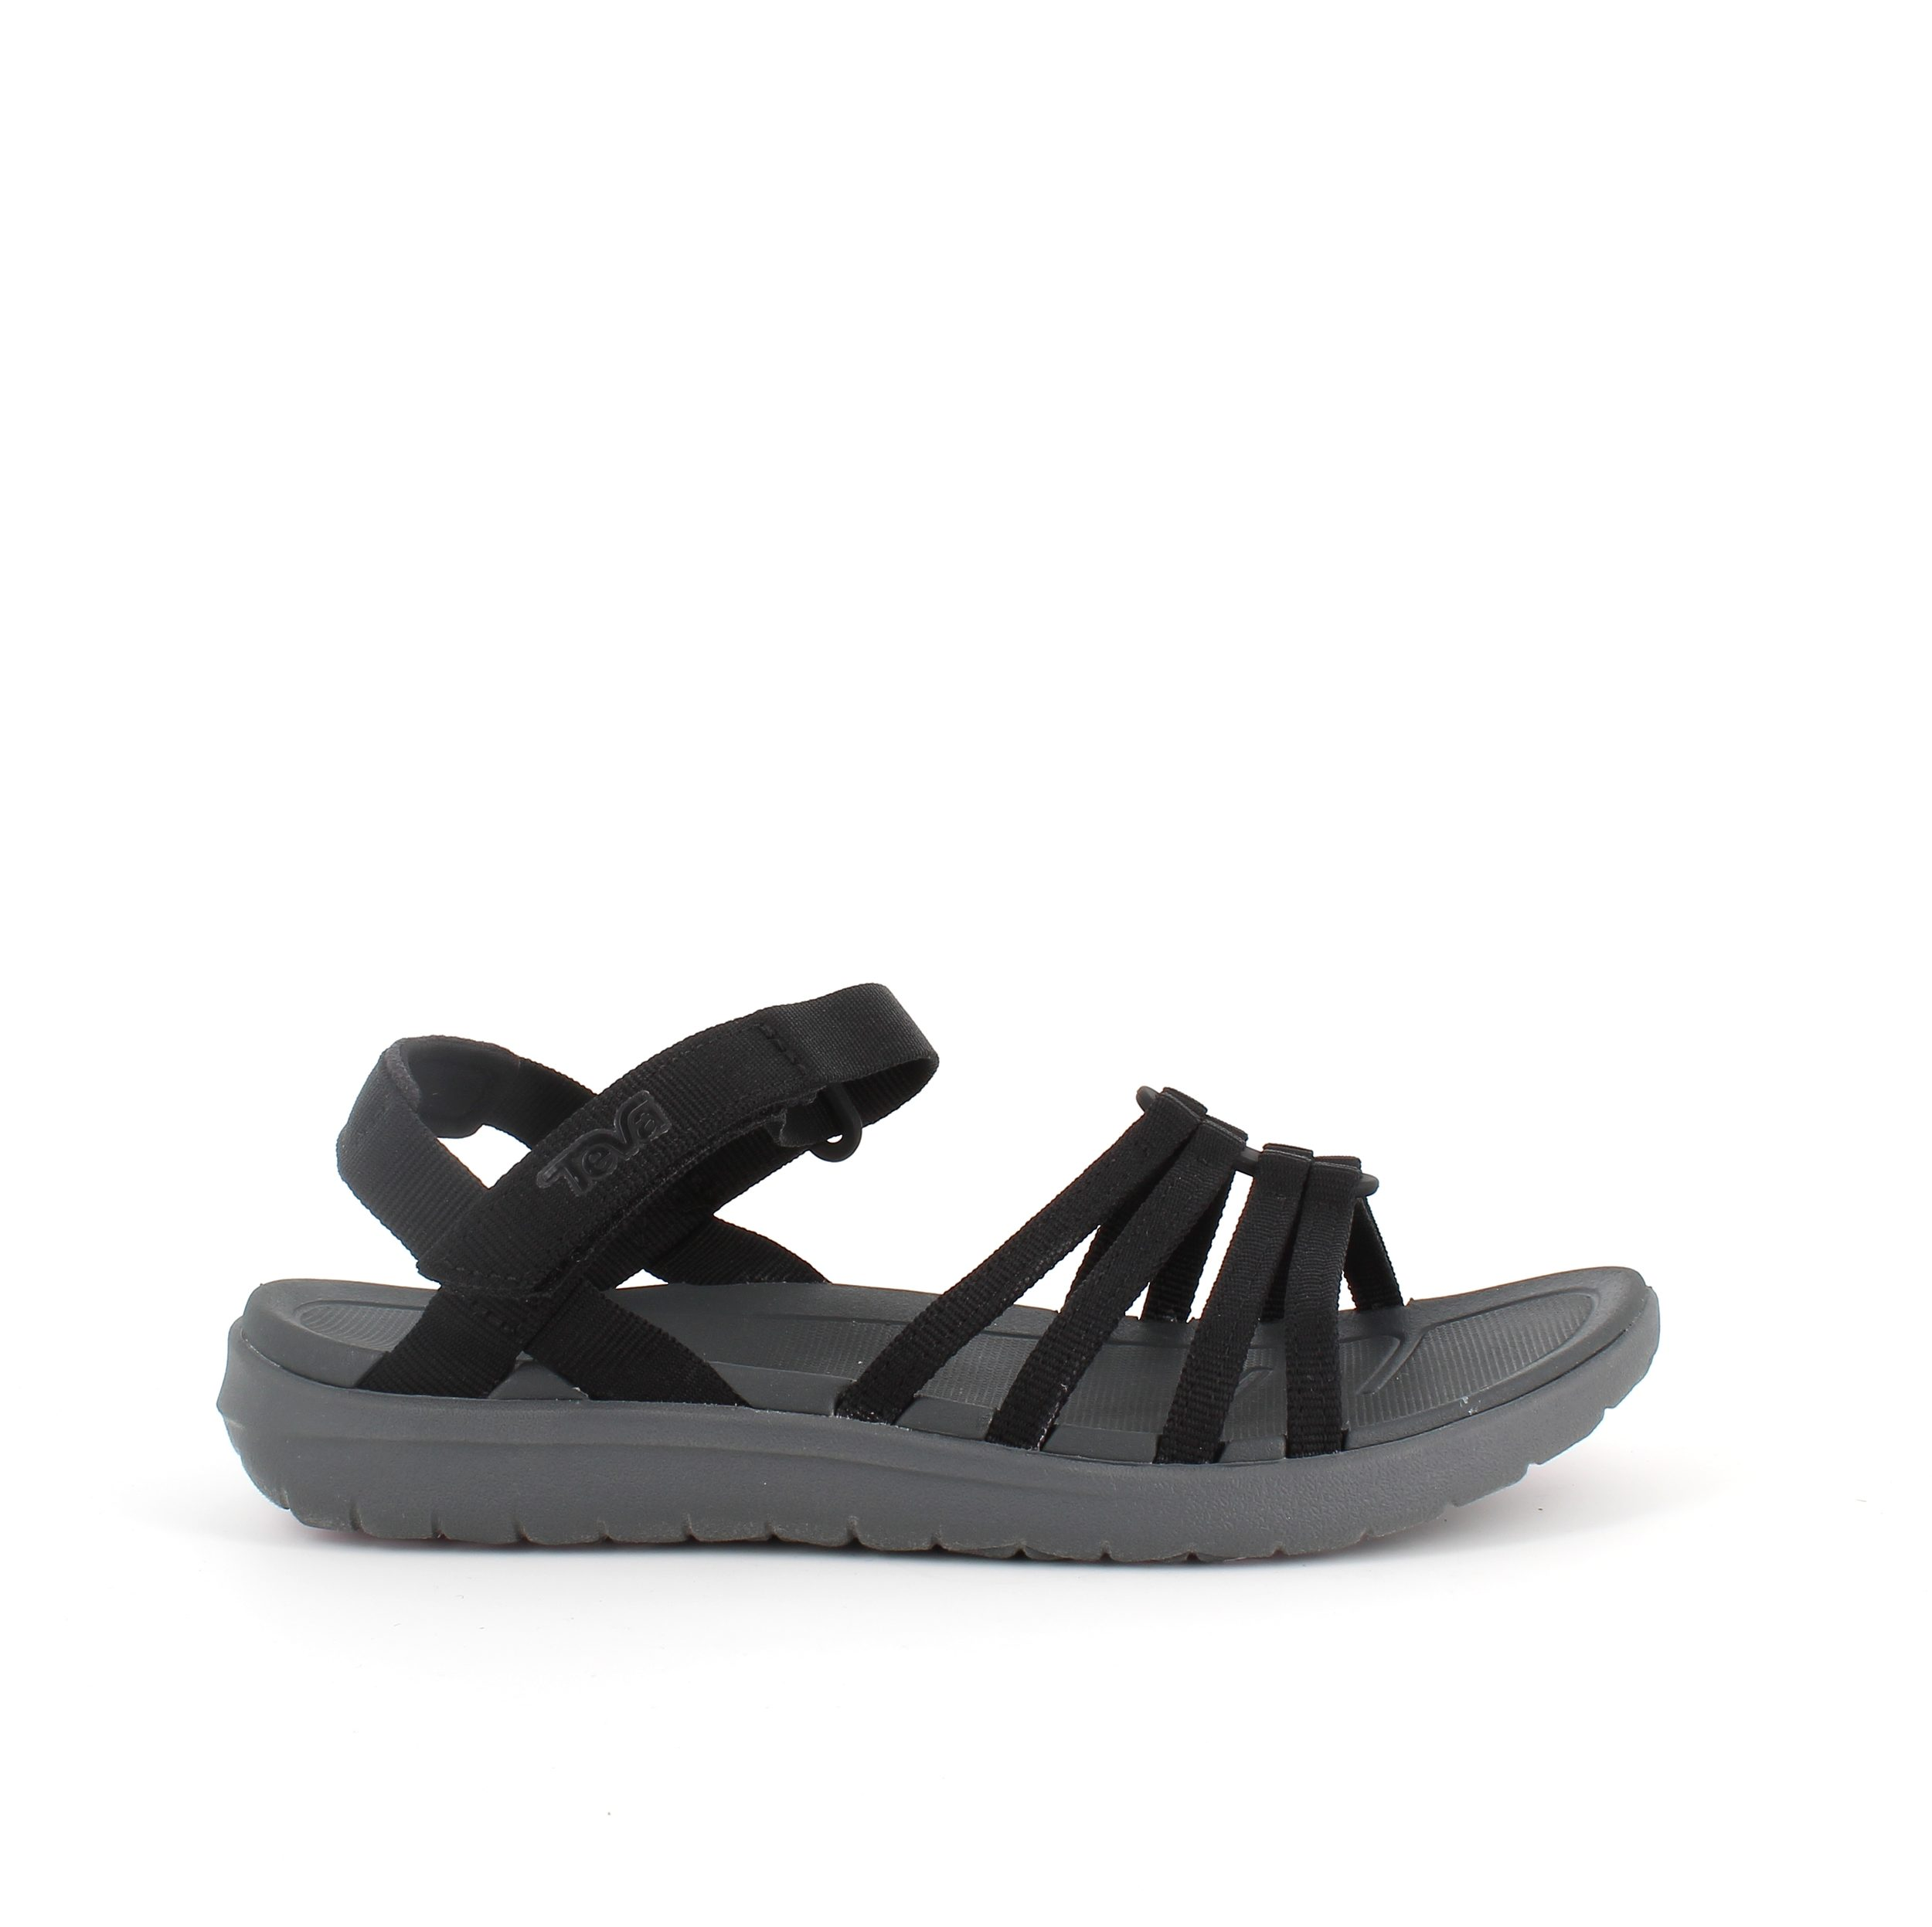 Image of   Teva Sanborn sort sandal - 40